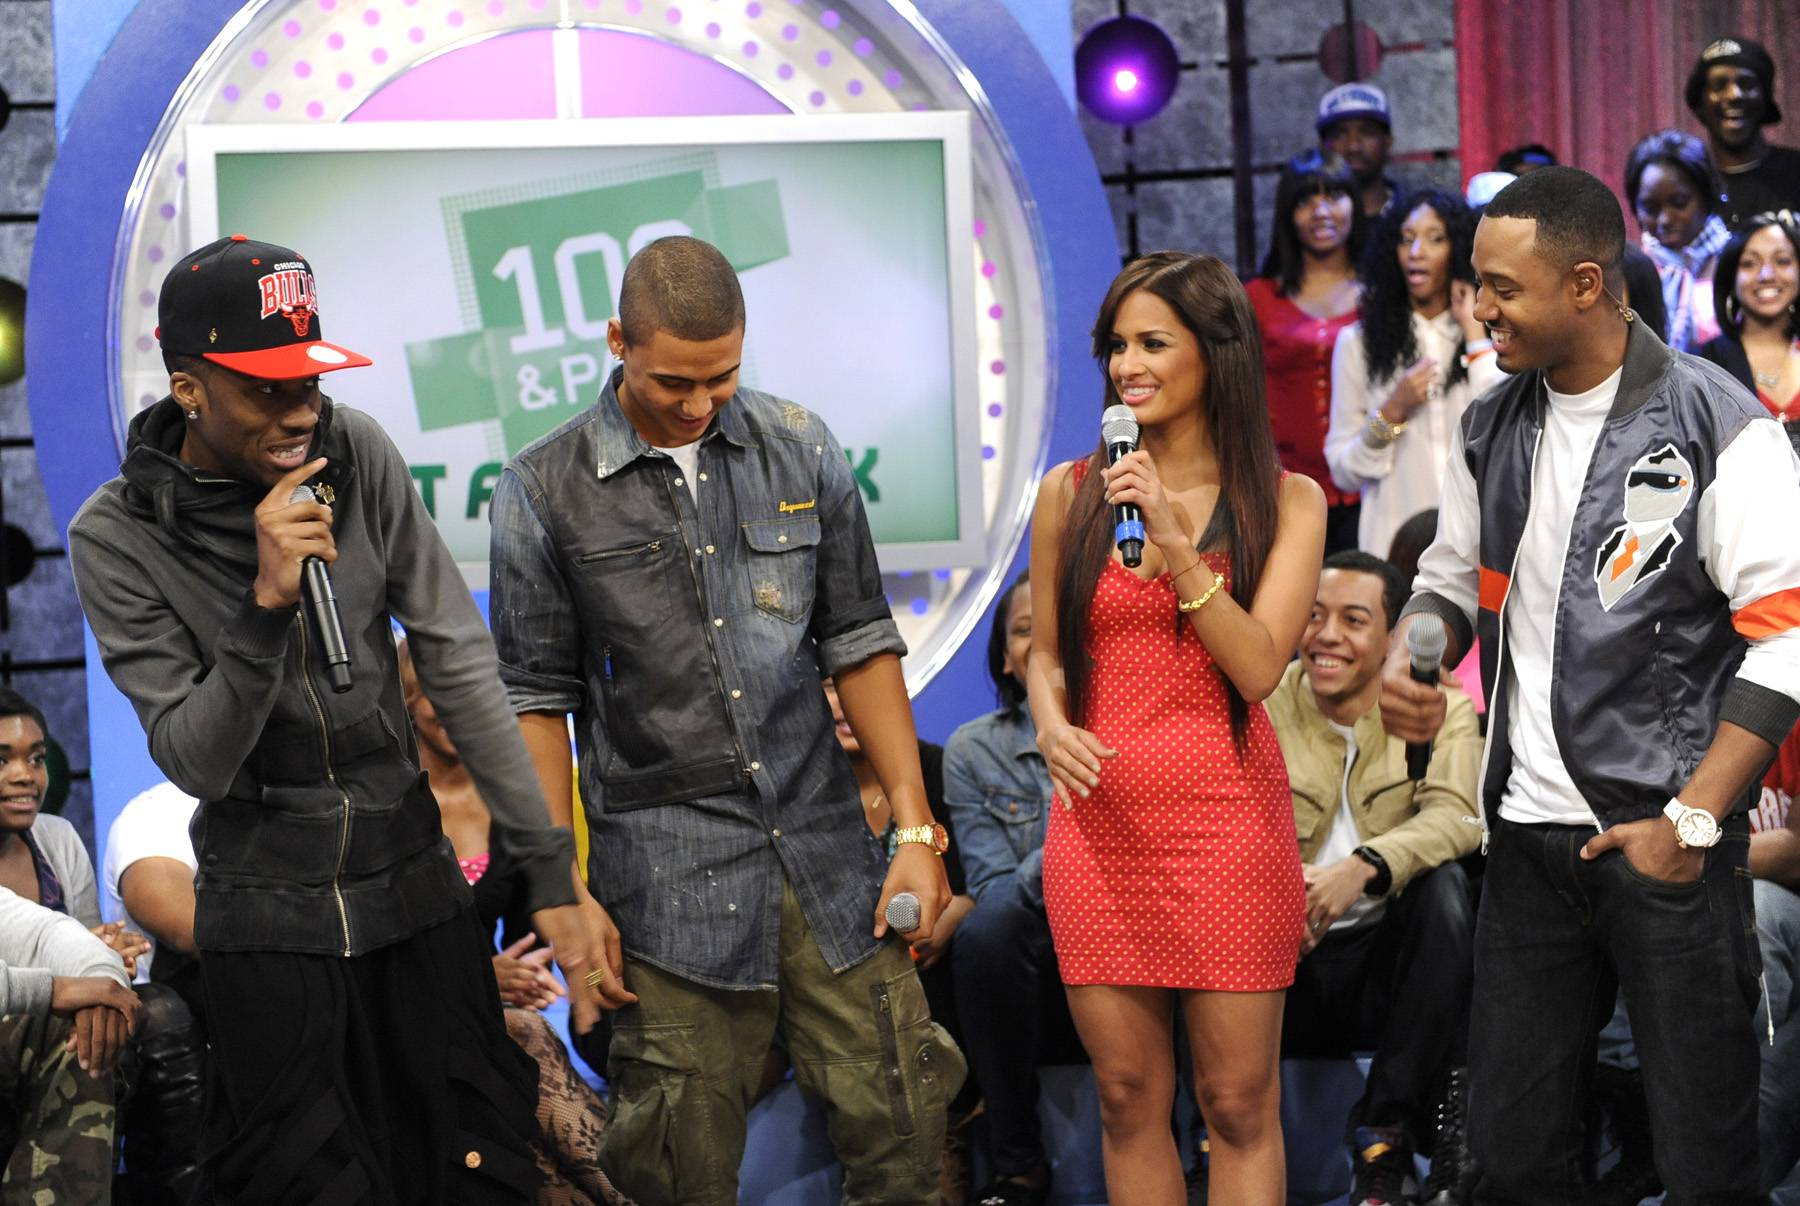 Cool Commentary - Kendre tells Rocsi Diaz and Terrence J what it was like working with Quincy at 106 & Park, May 3, 2012. (Photo by: John Ricard / BET)